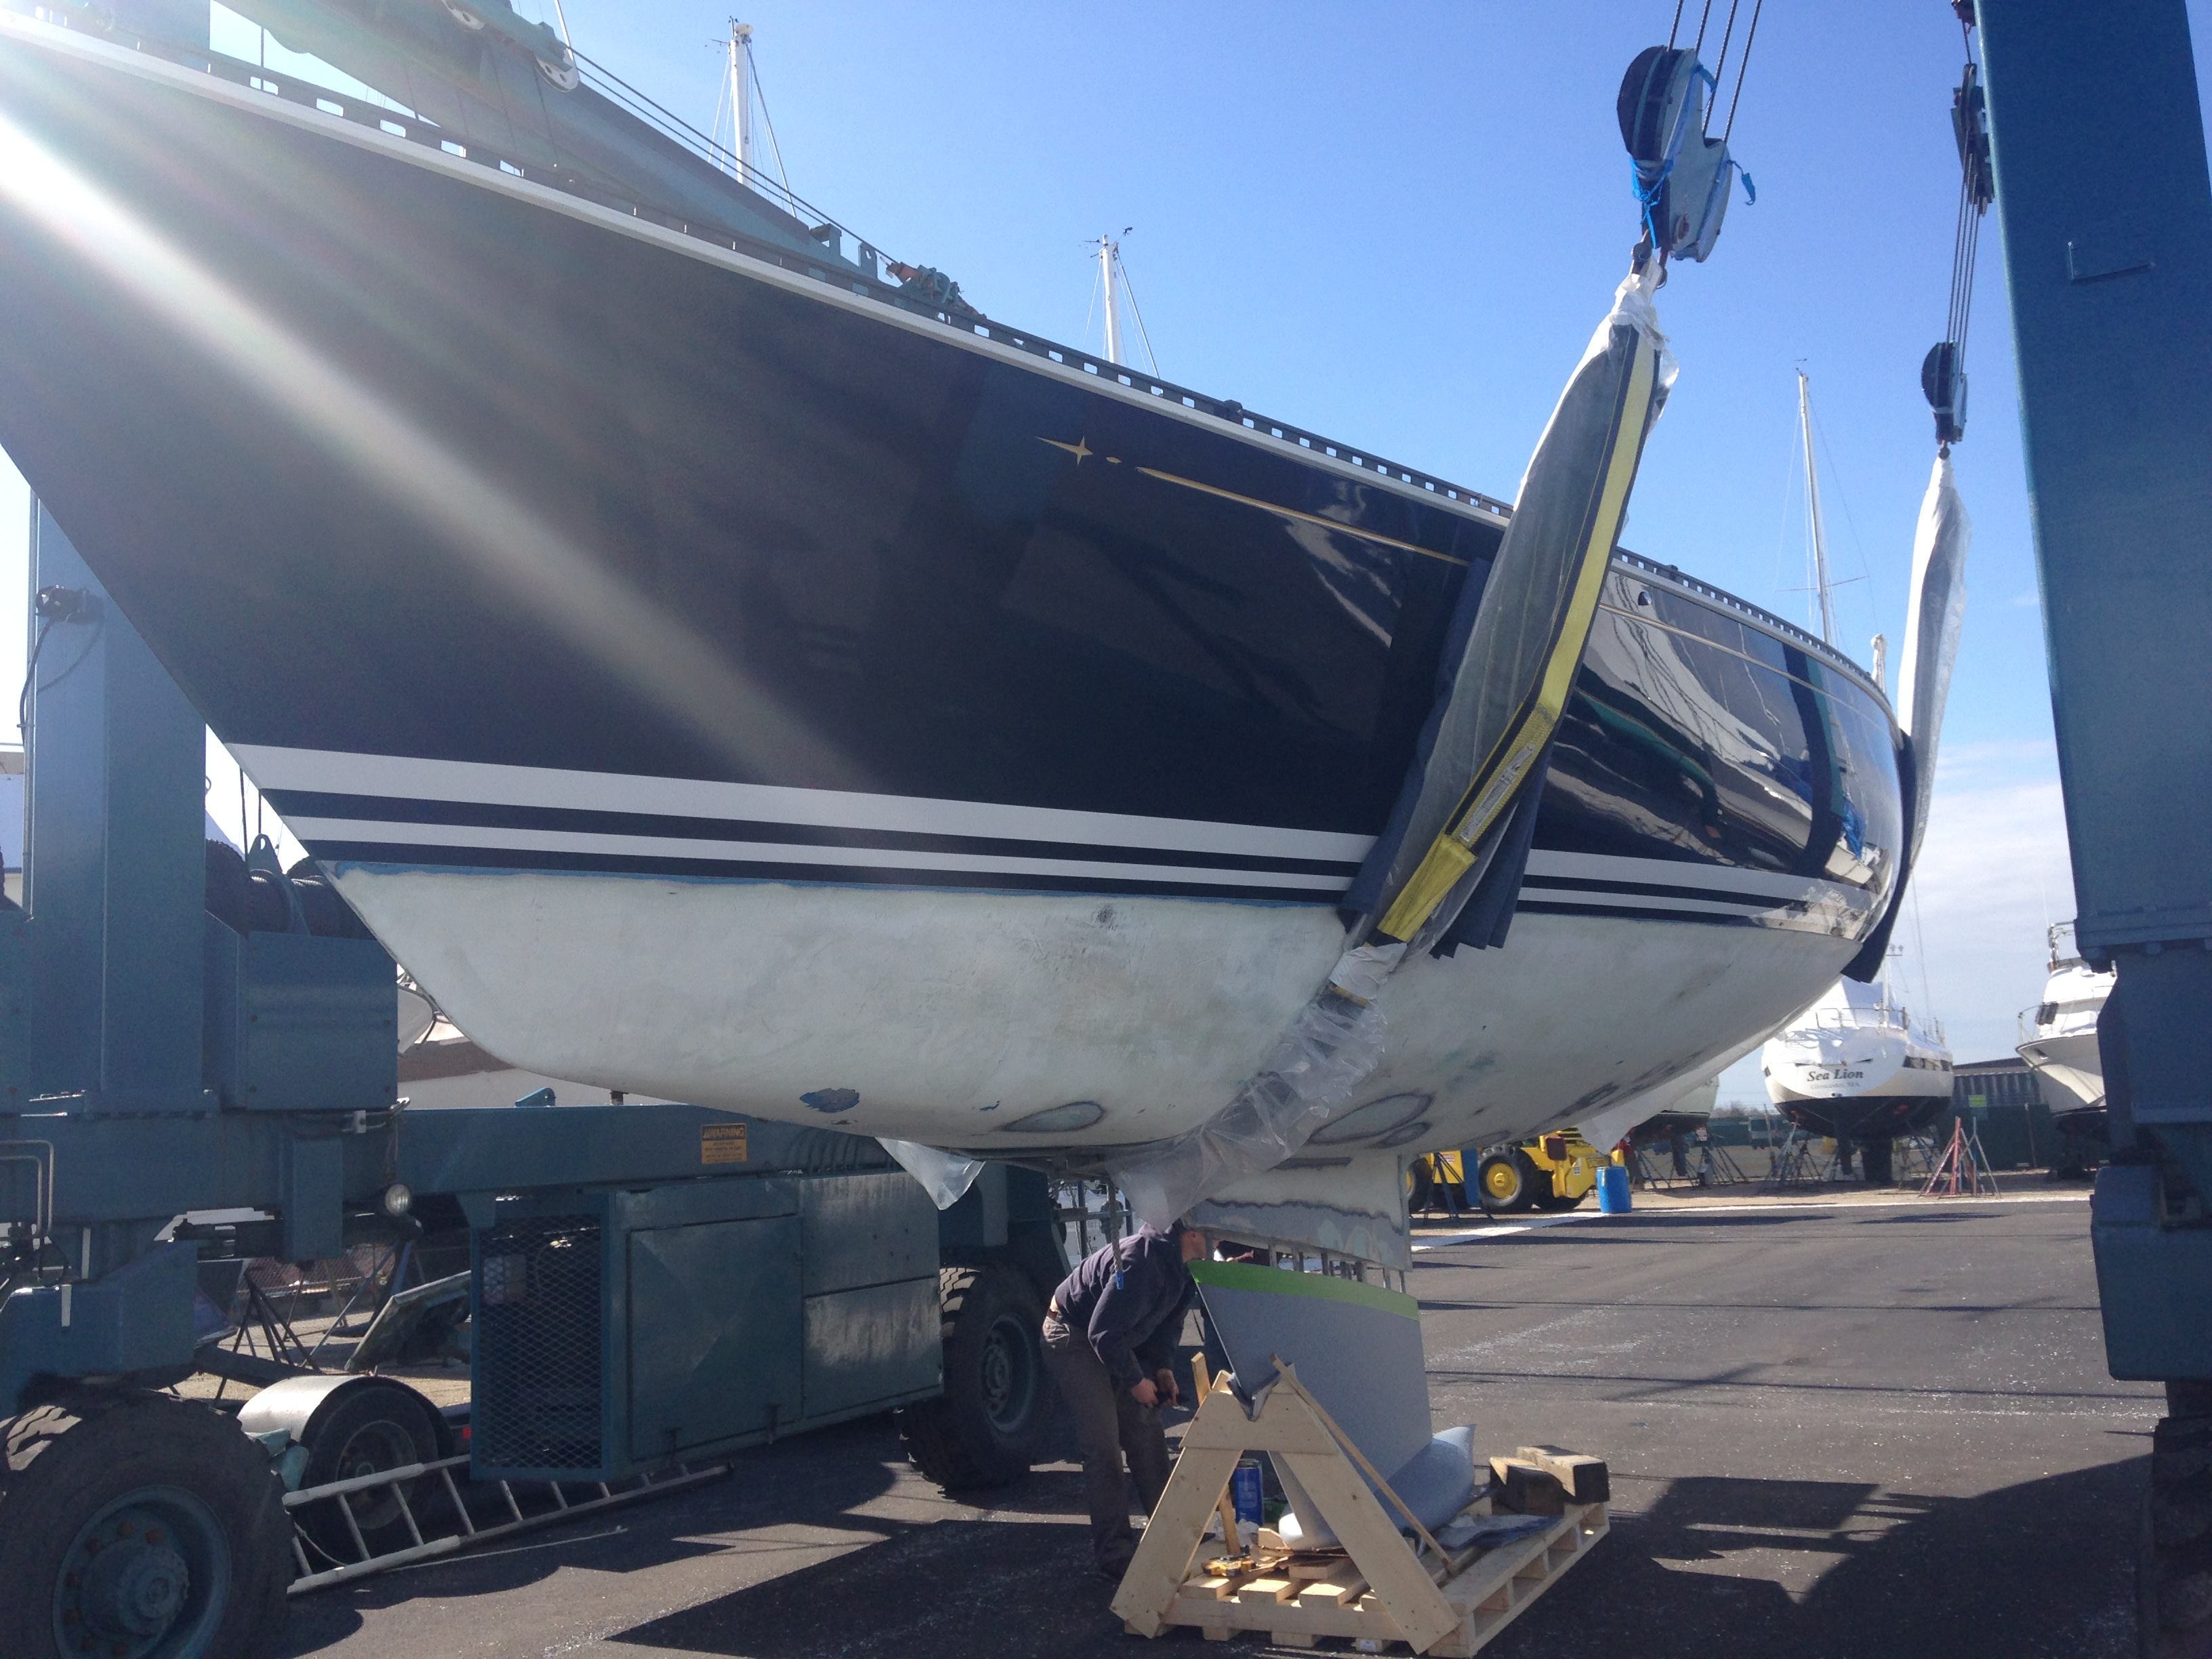 Installation of new keel on a C & C Sailboat